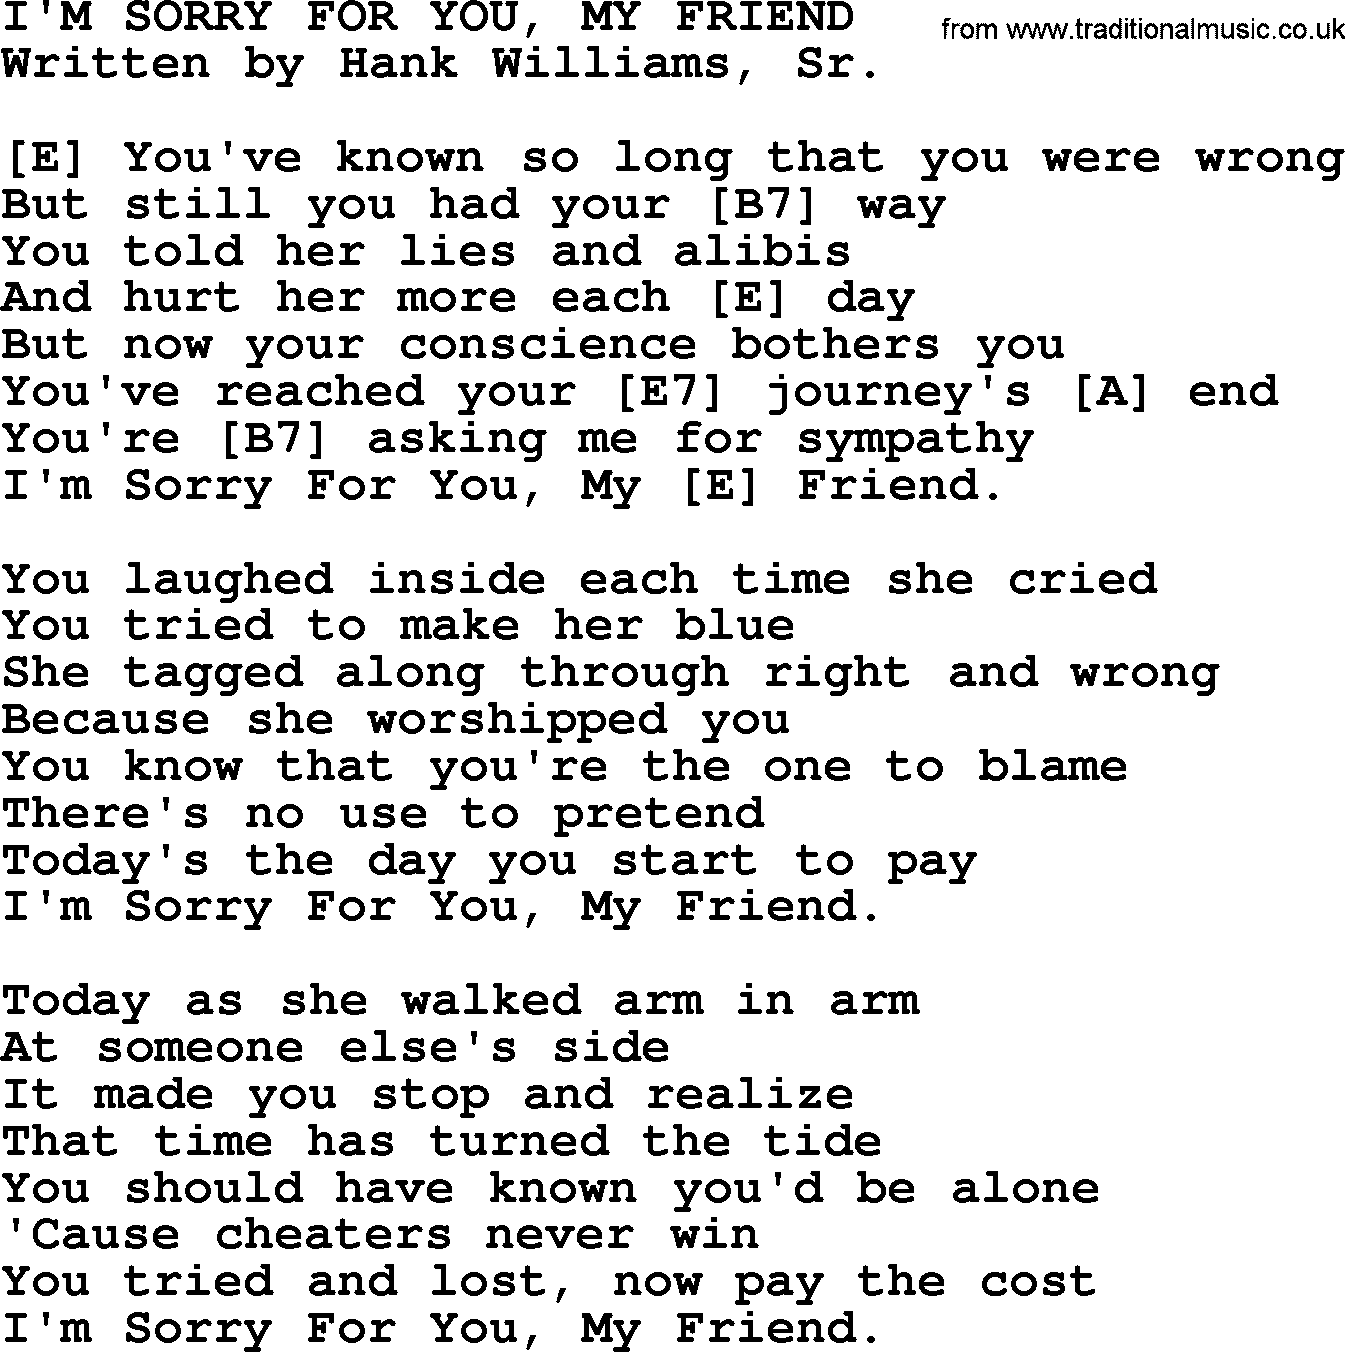 Hank Williams song: I'm Sorry For You, My Friend, lyrics and chords